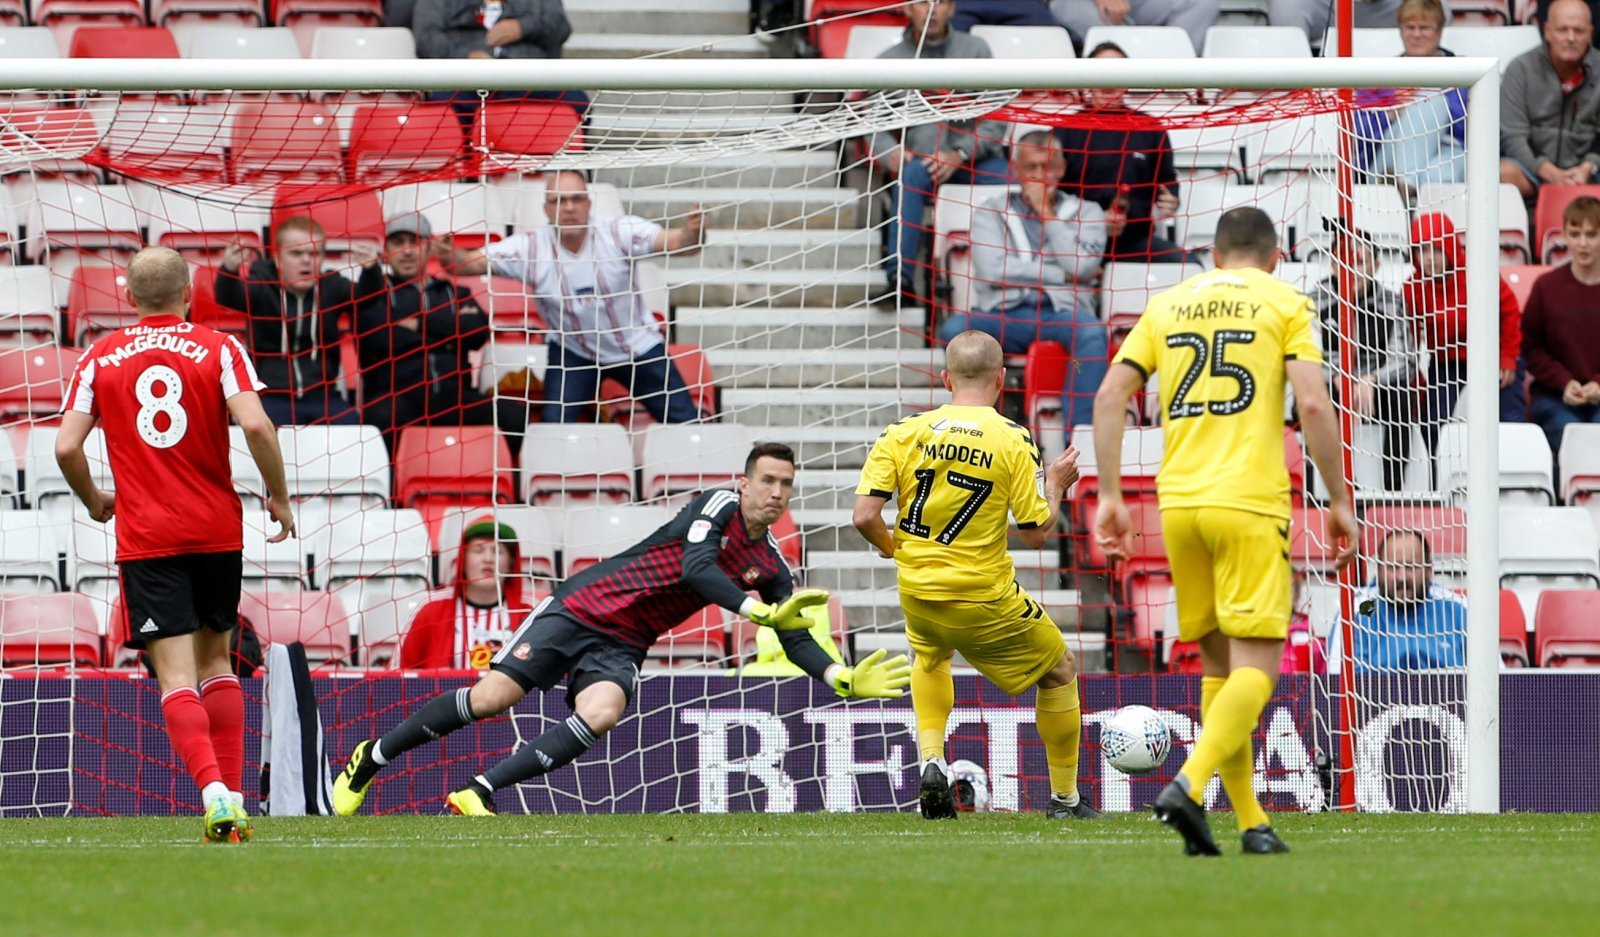 Sunderland fans react to Jon McLaughlin's Doncaster Rovers performance